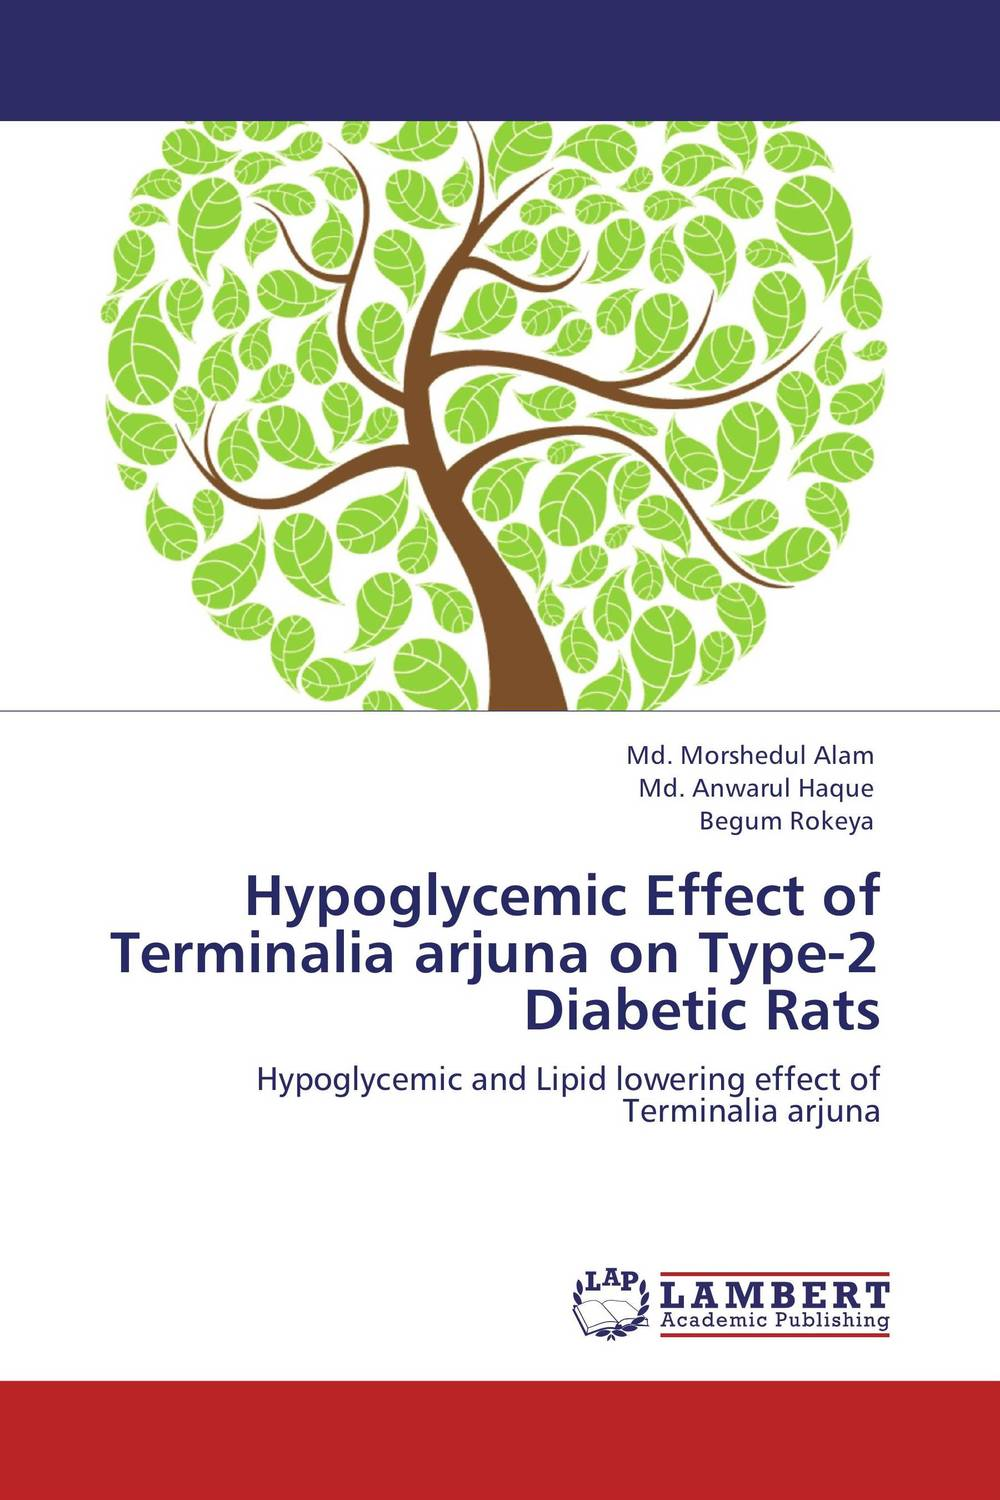 Hypoglycemic Effect of Terminalia arjuna on Type-2 Diabetic Rats effect of cyclooxygenase inhibitors on diabetic complications